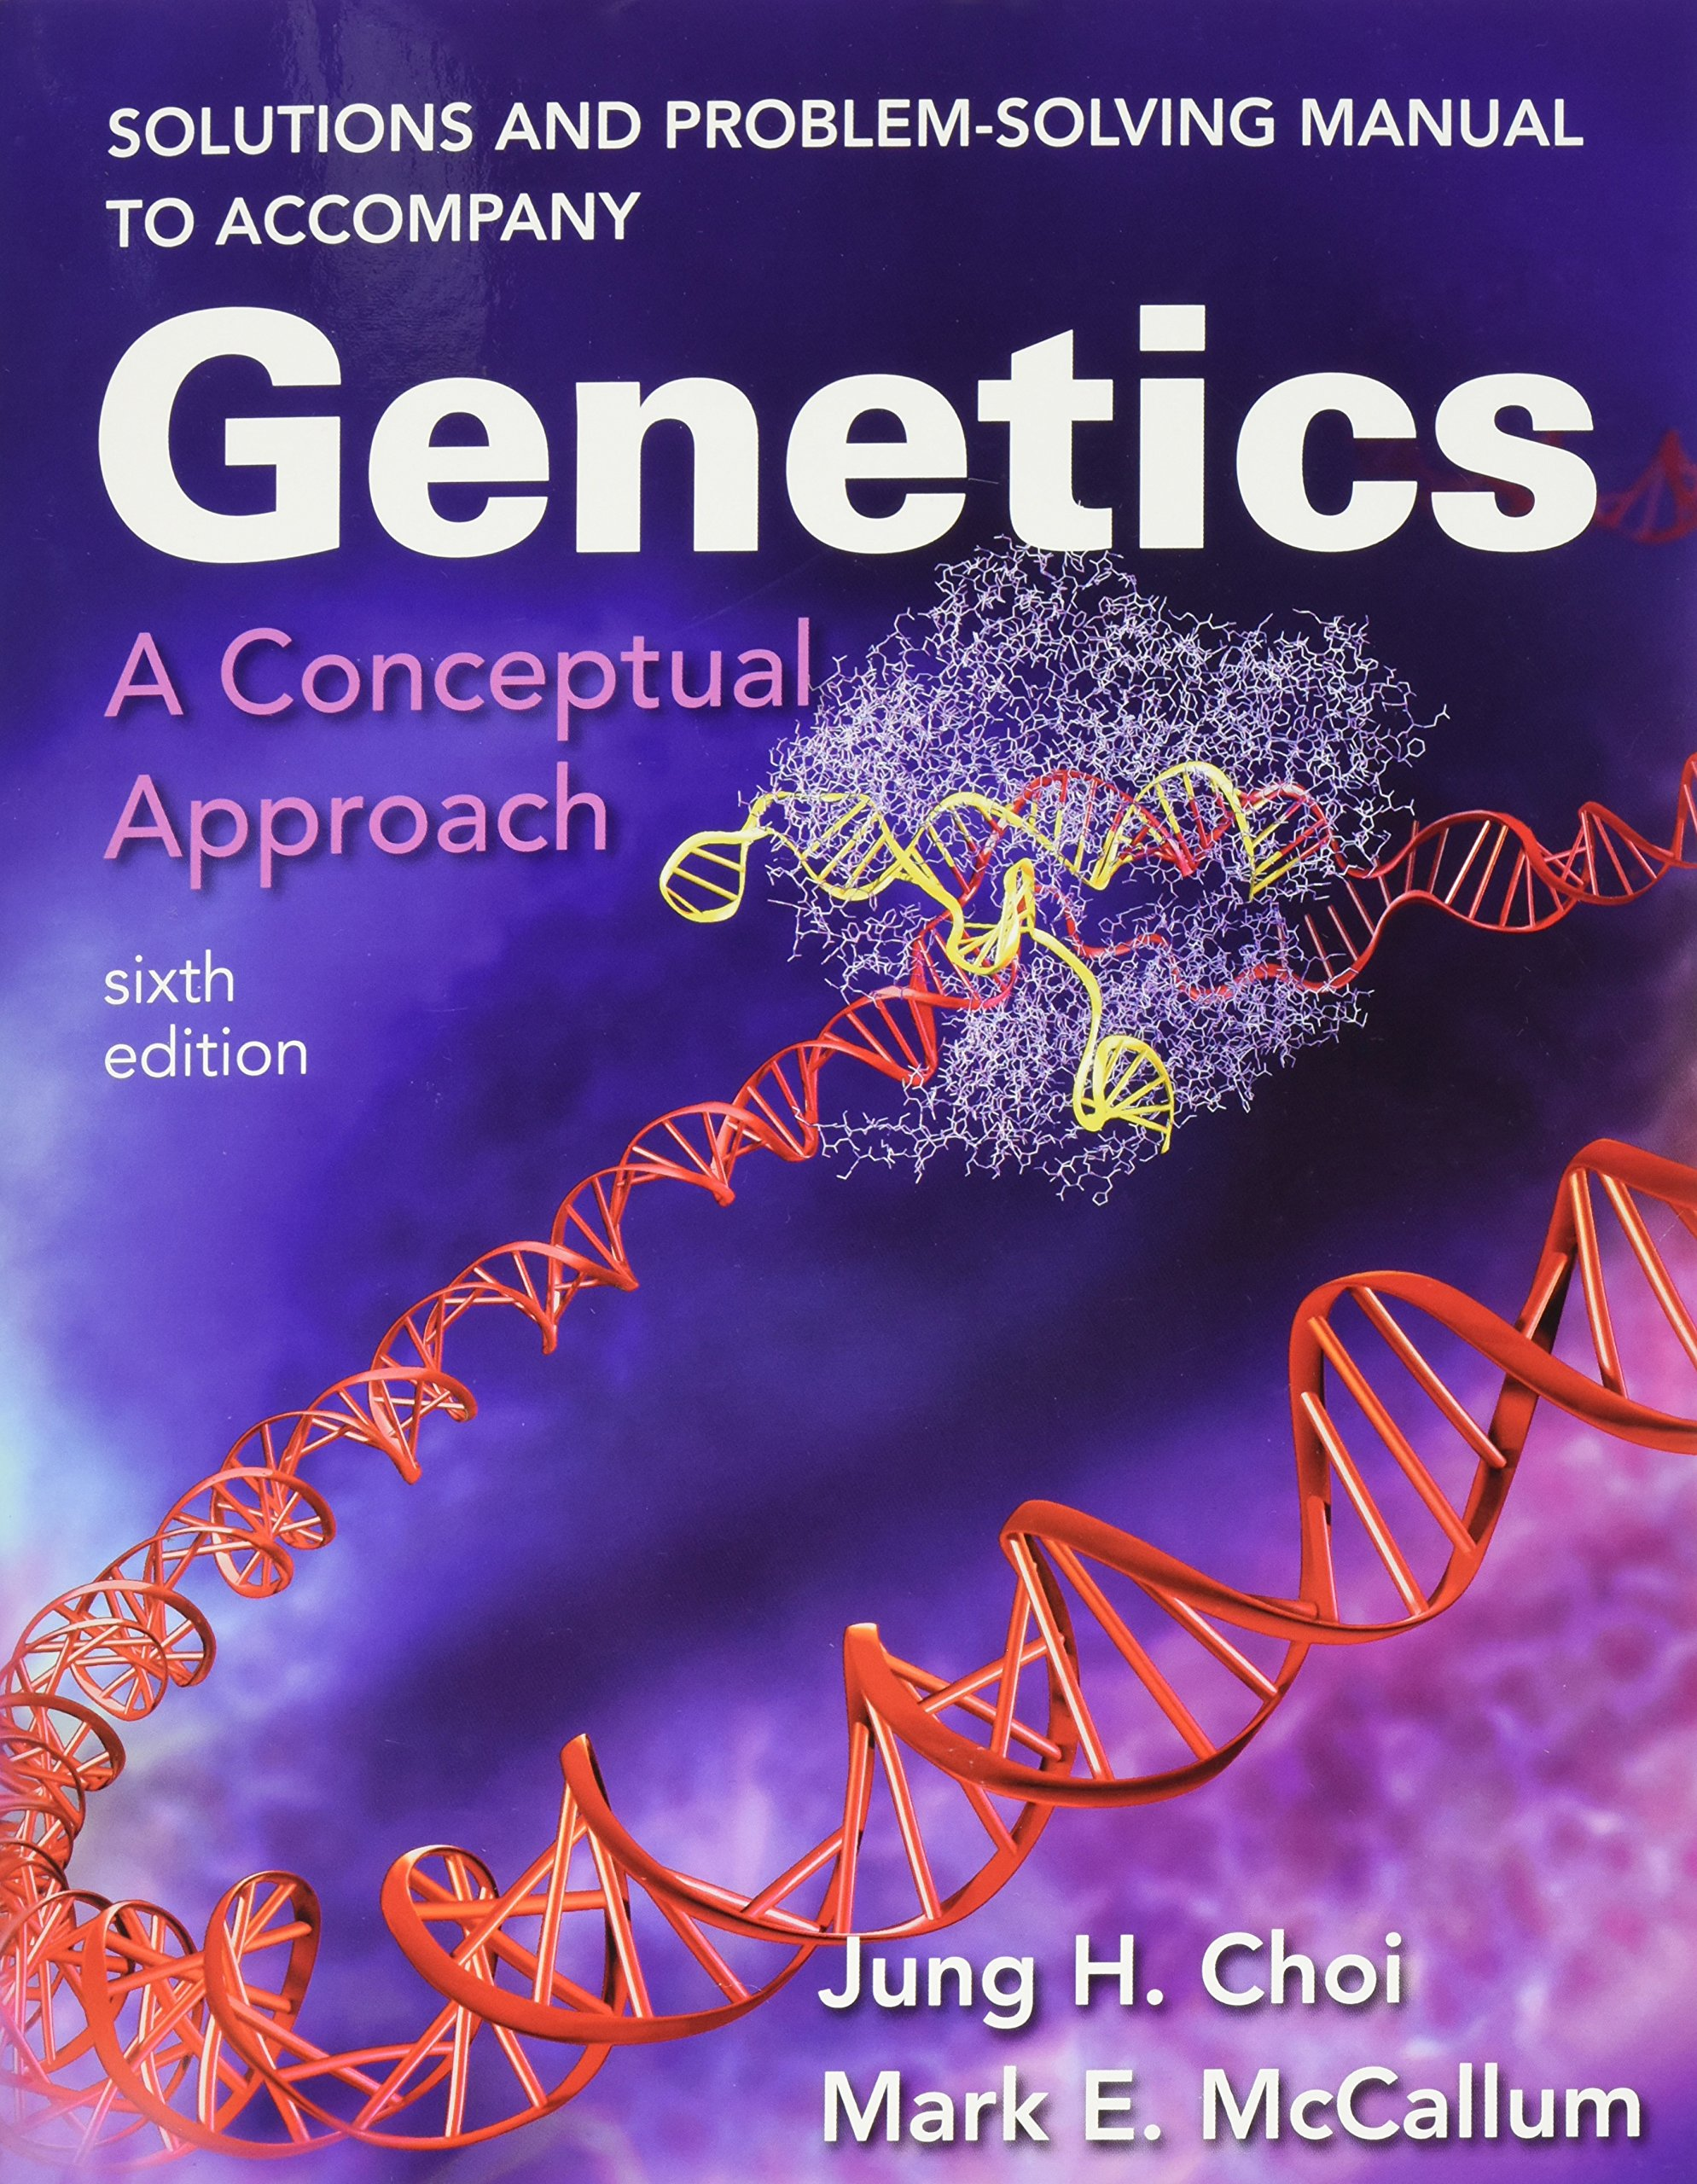 Solutions and Problem-Solving Manual to Accompany Genetics: A Conceptual Approach